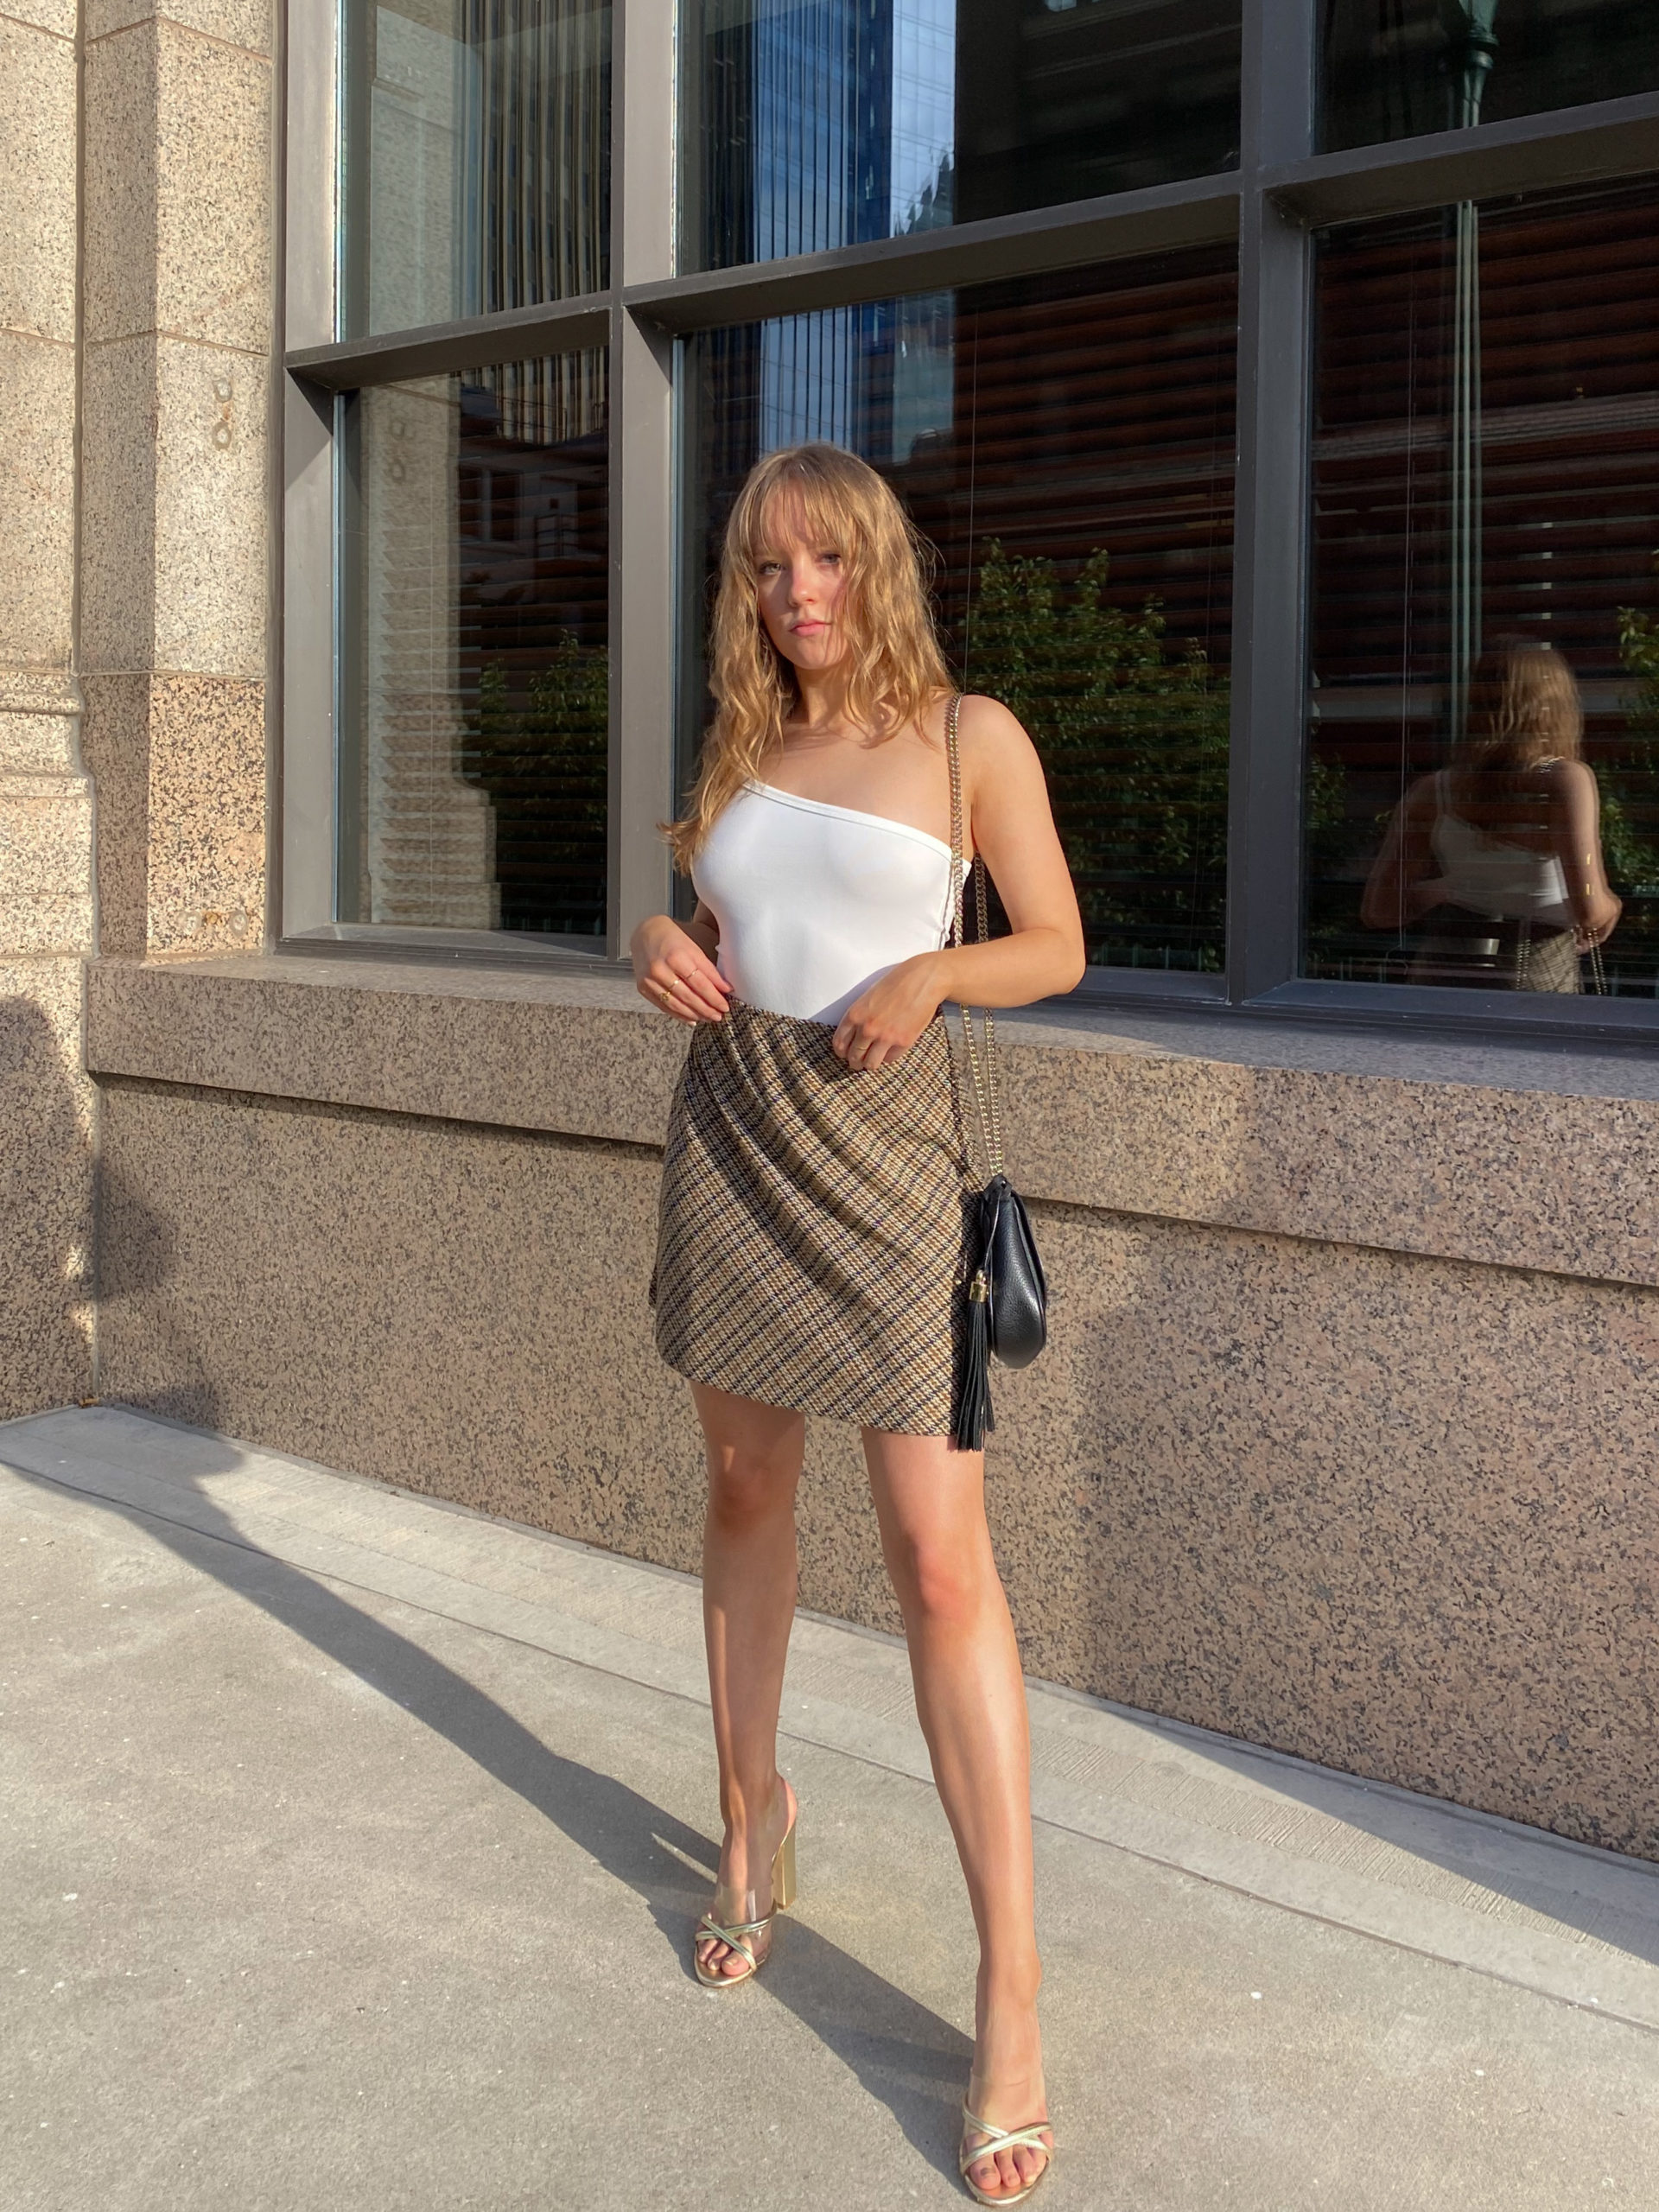 ASYMMETRICAL BASICS TO WEAR NOW AND LATER